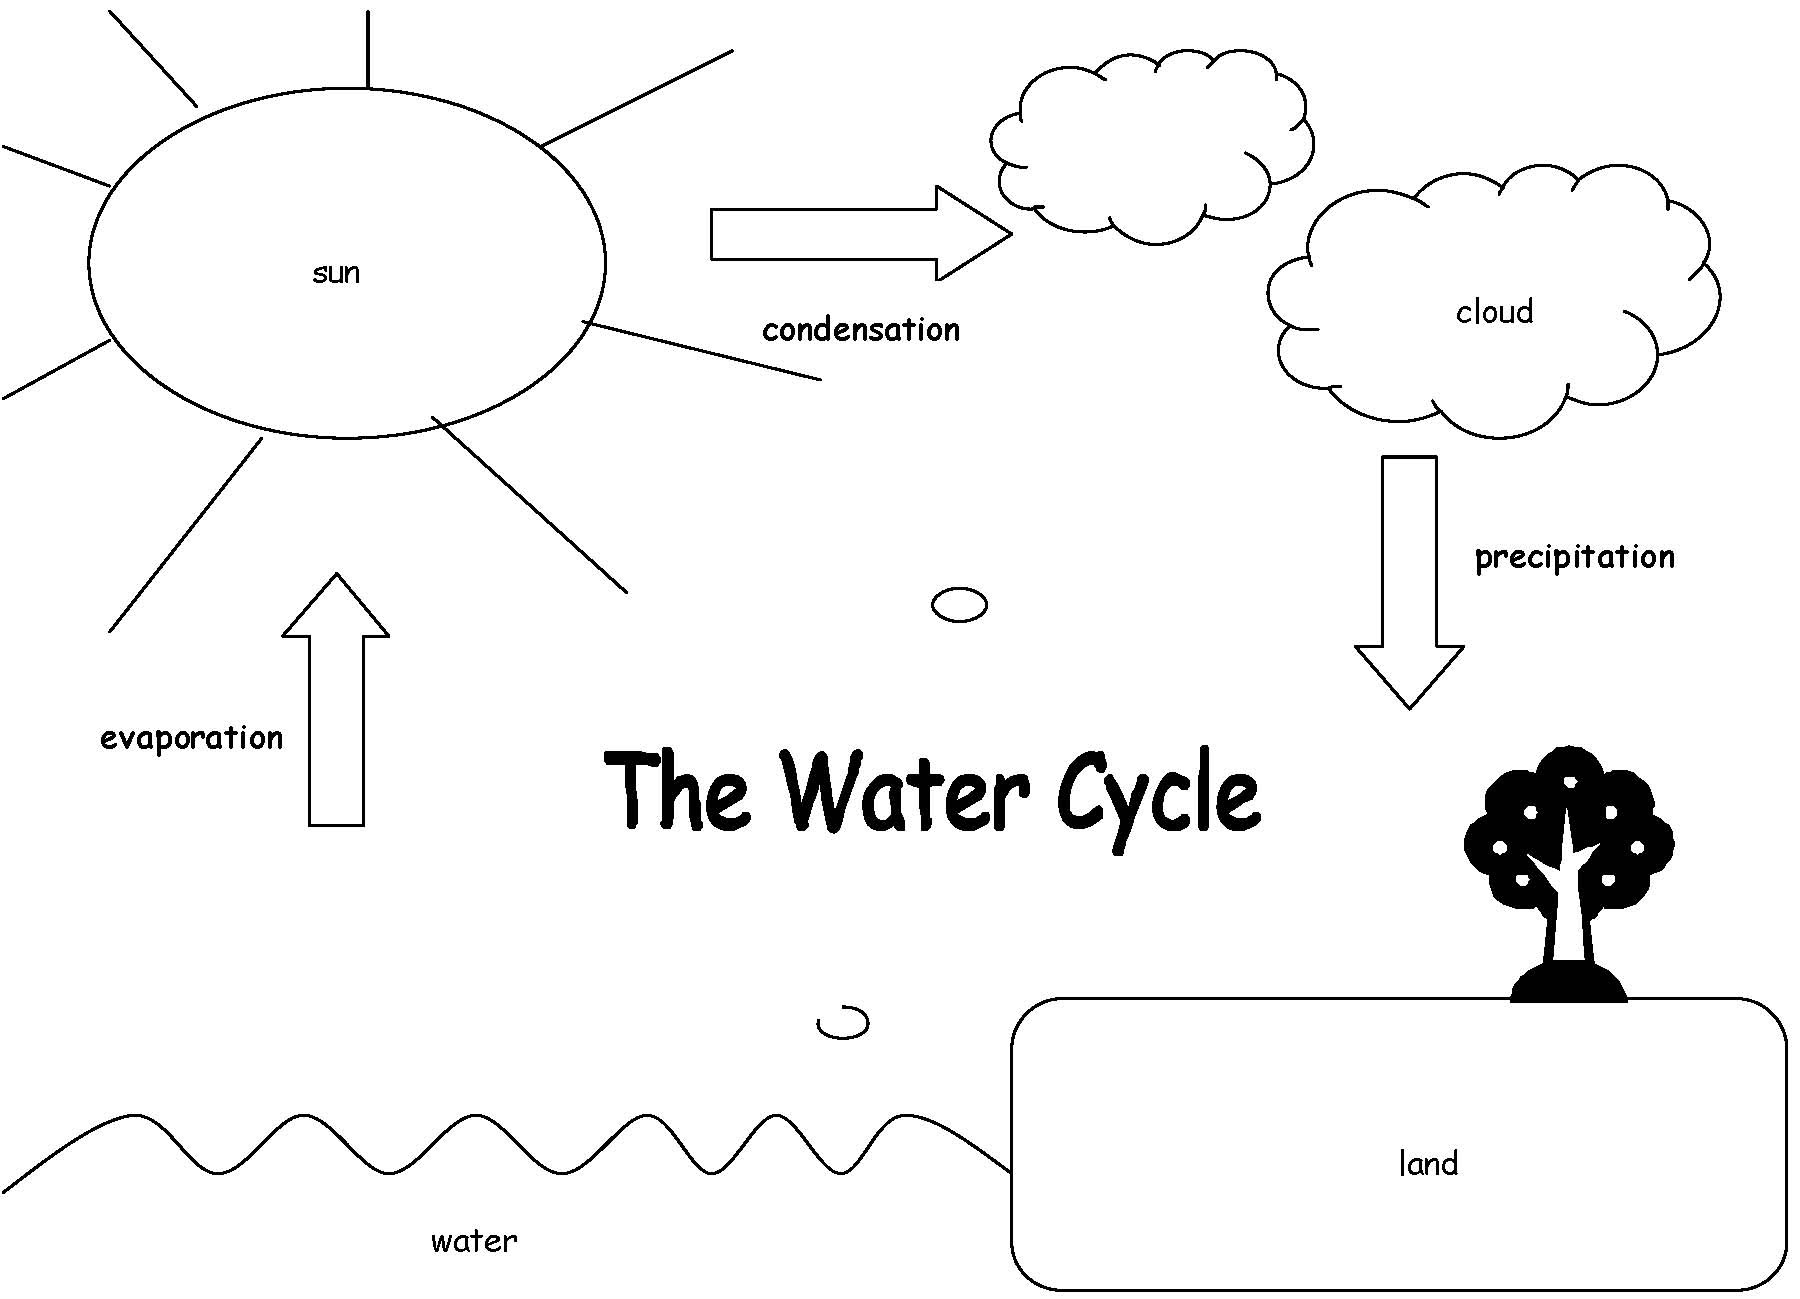 Clipart cycle diagram picture transparent Water cycle clipart in black and white - ClipartFest picture transparent